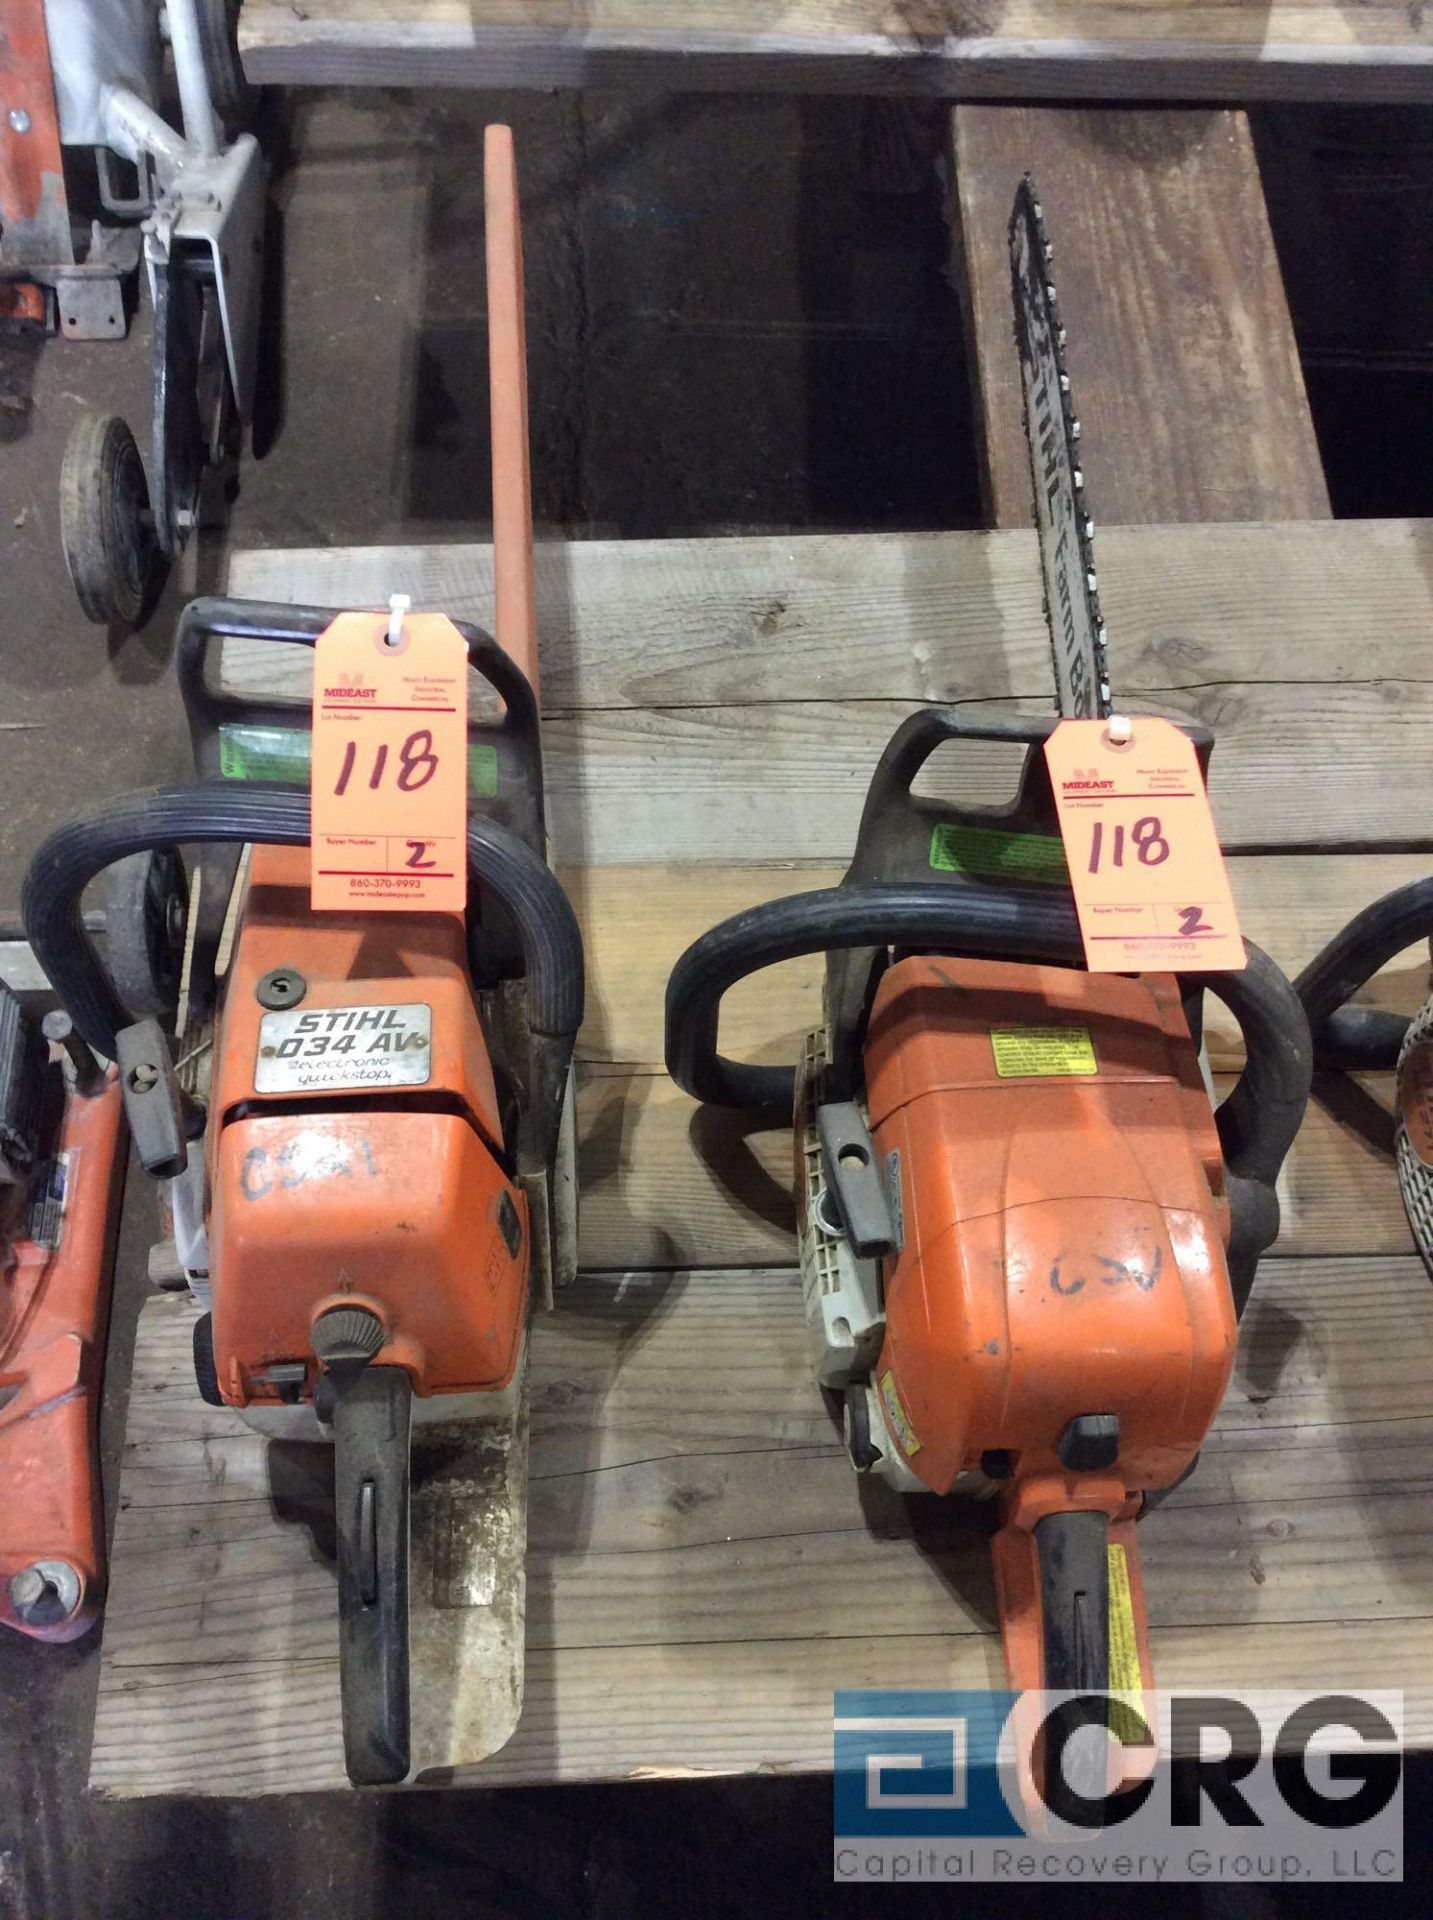 Lot 118 - Lot of (2) asst Stihl gas chain saws